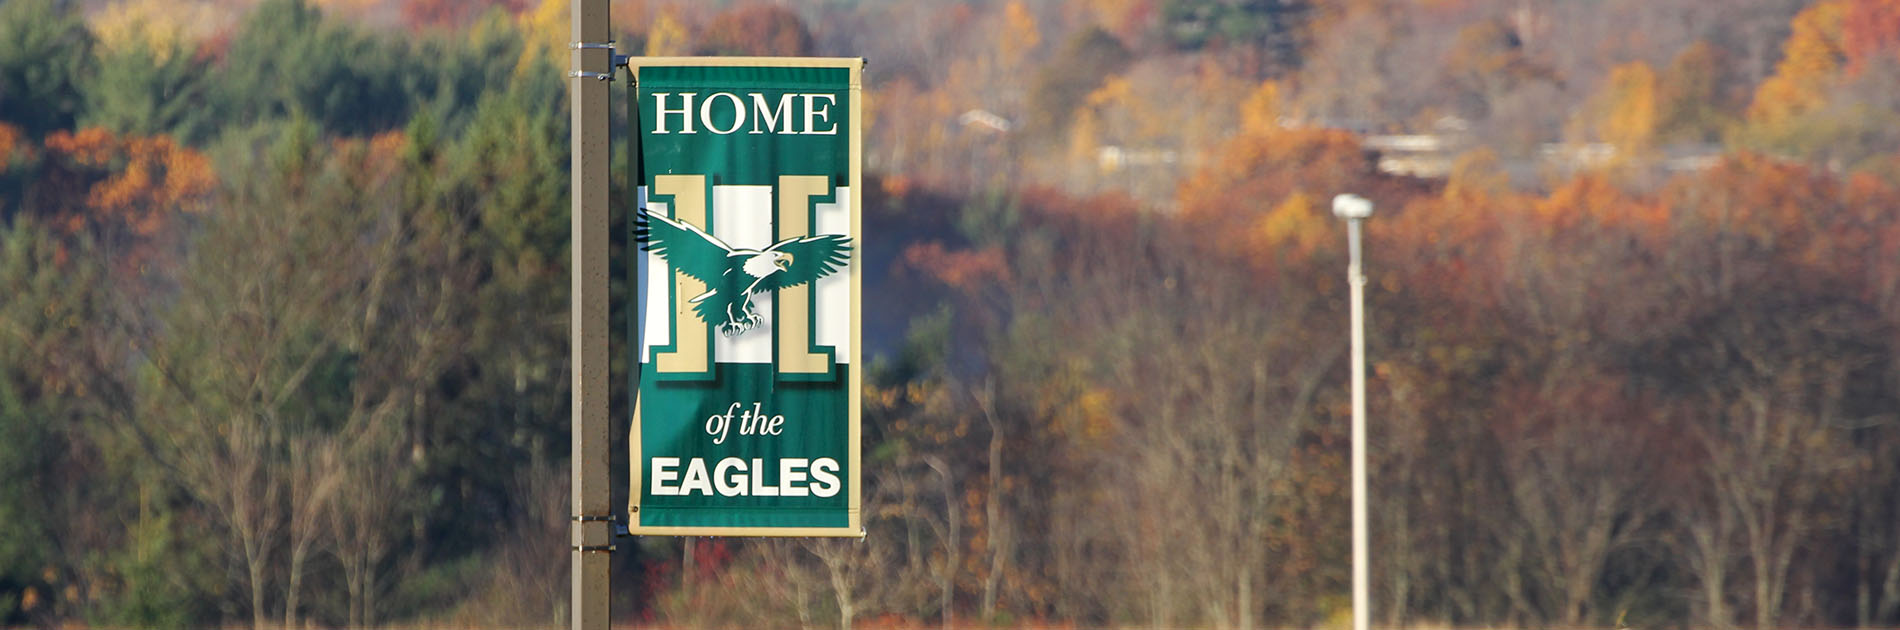 Eagle banner on the campus of Husson University